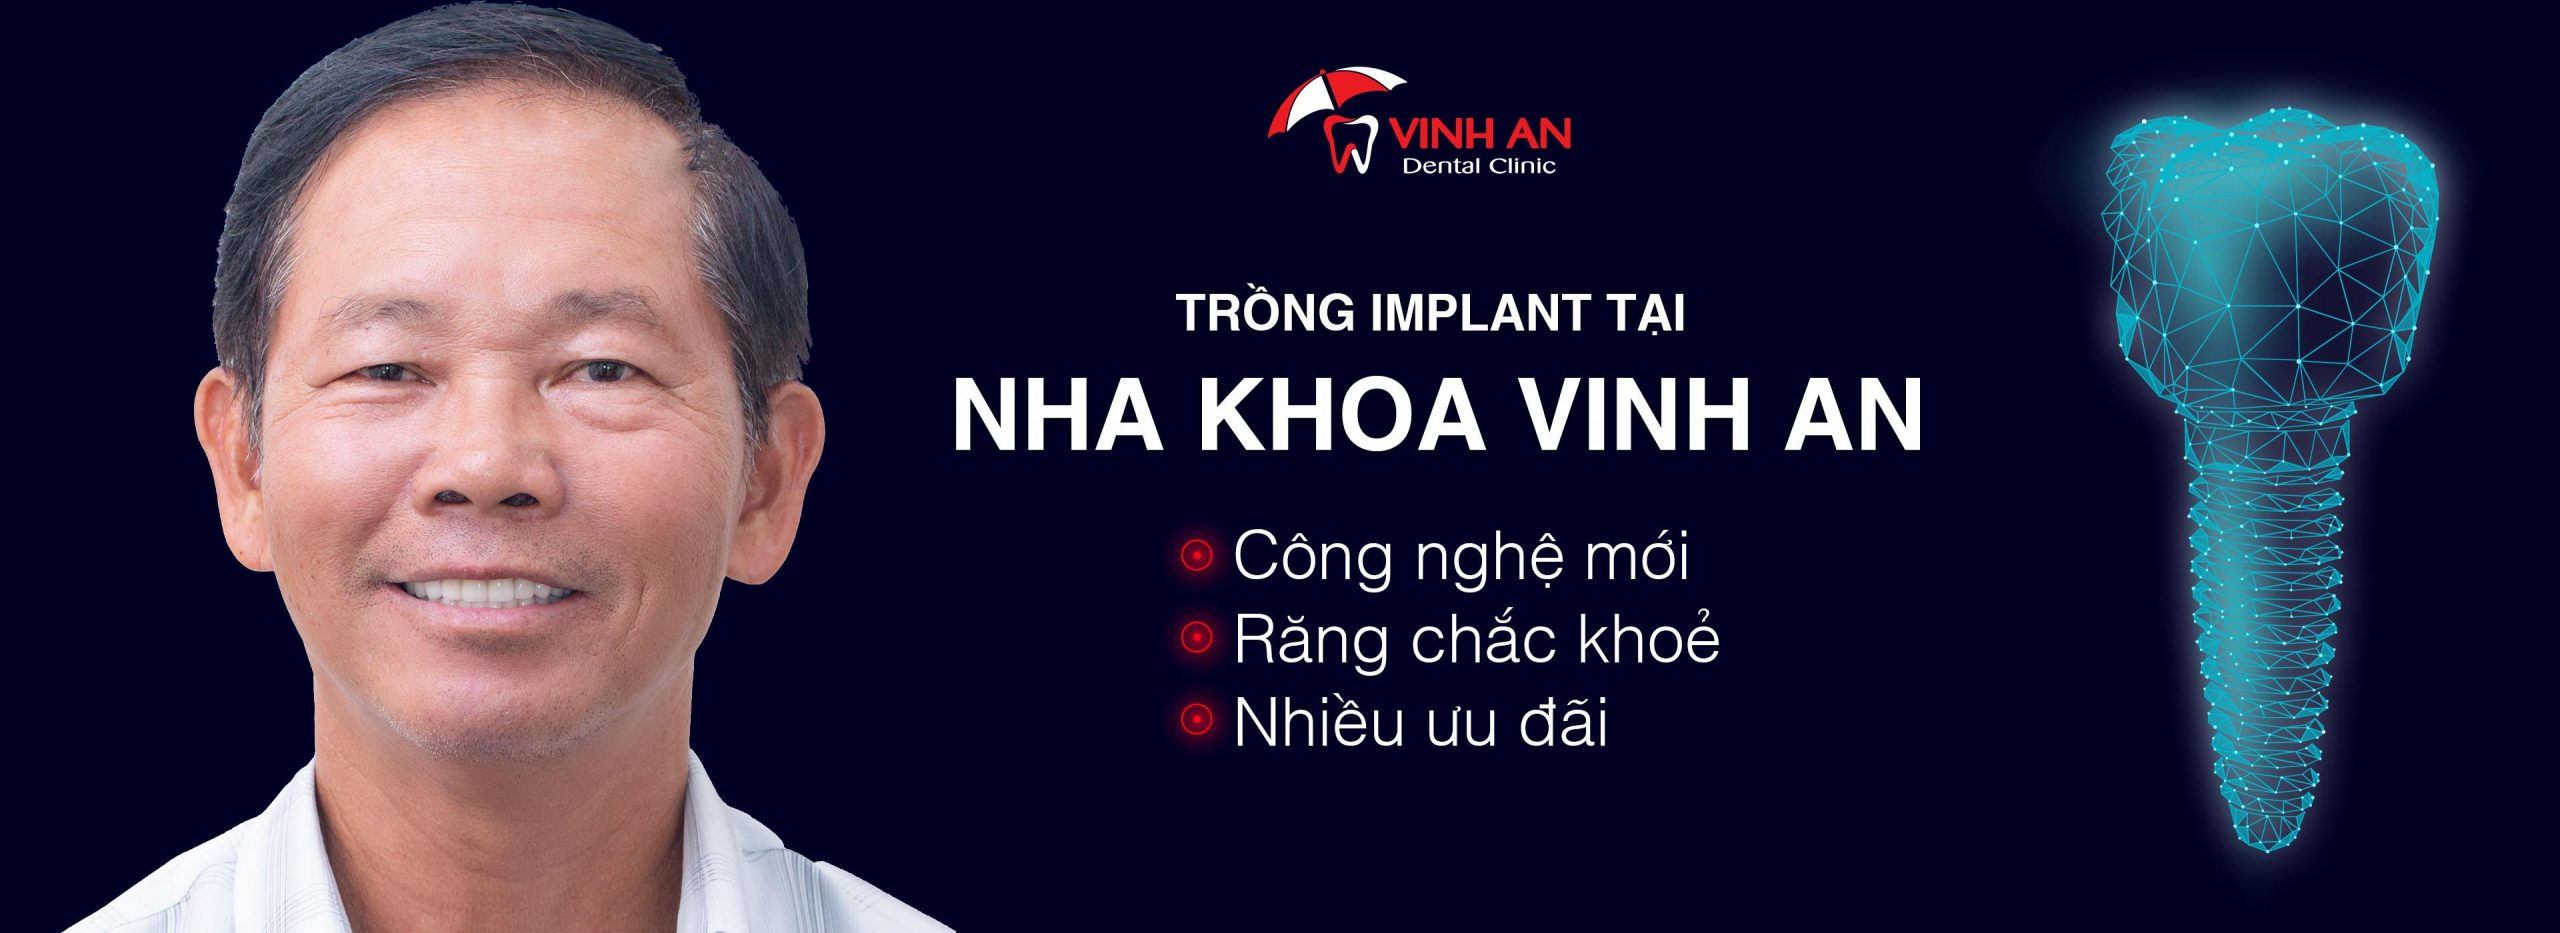 dịch vụ implant